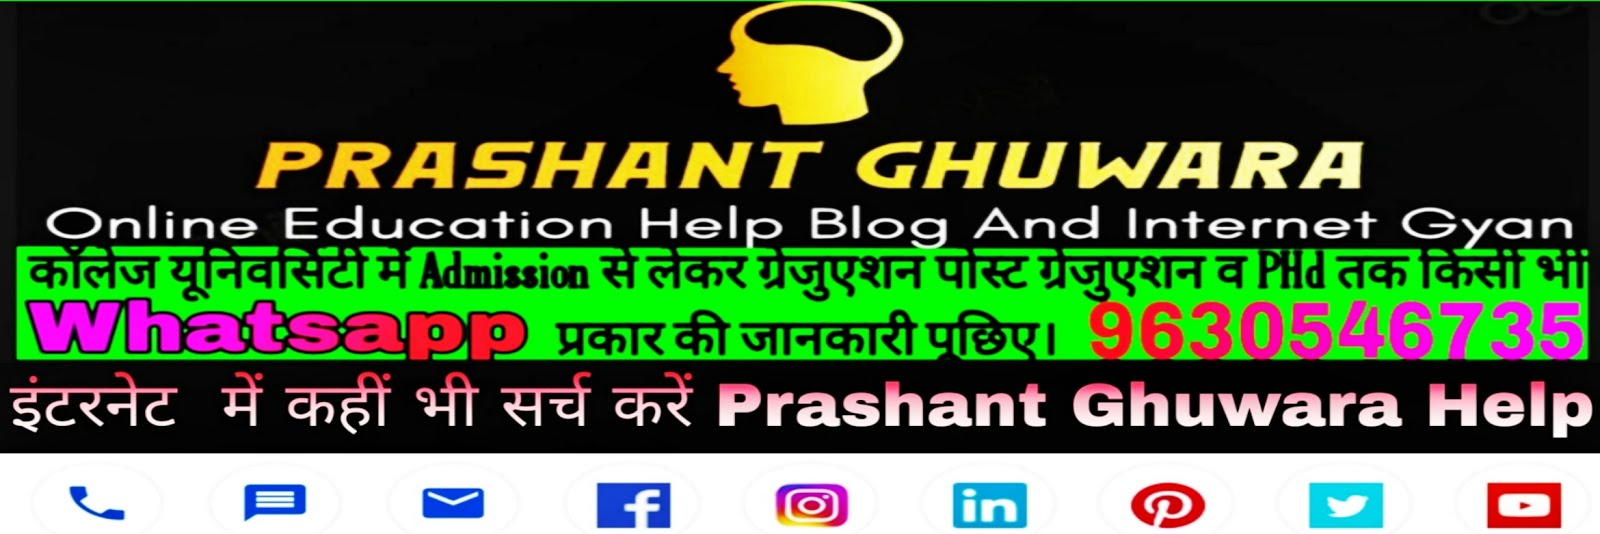 Prashant Ghuwara Online Education Help And Internet Gyan